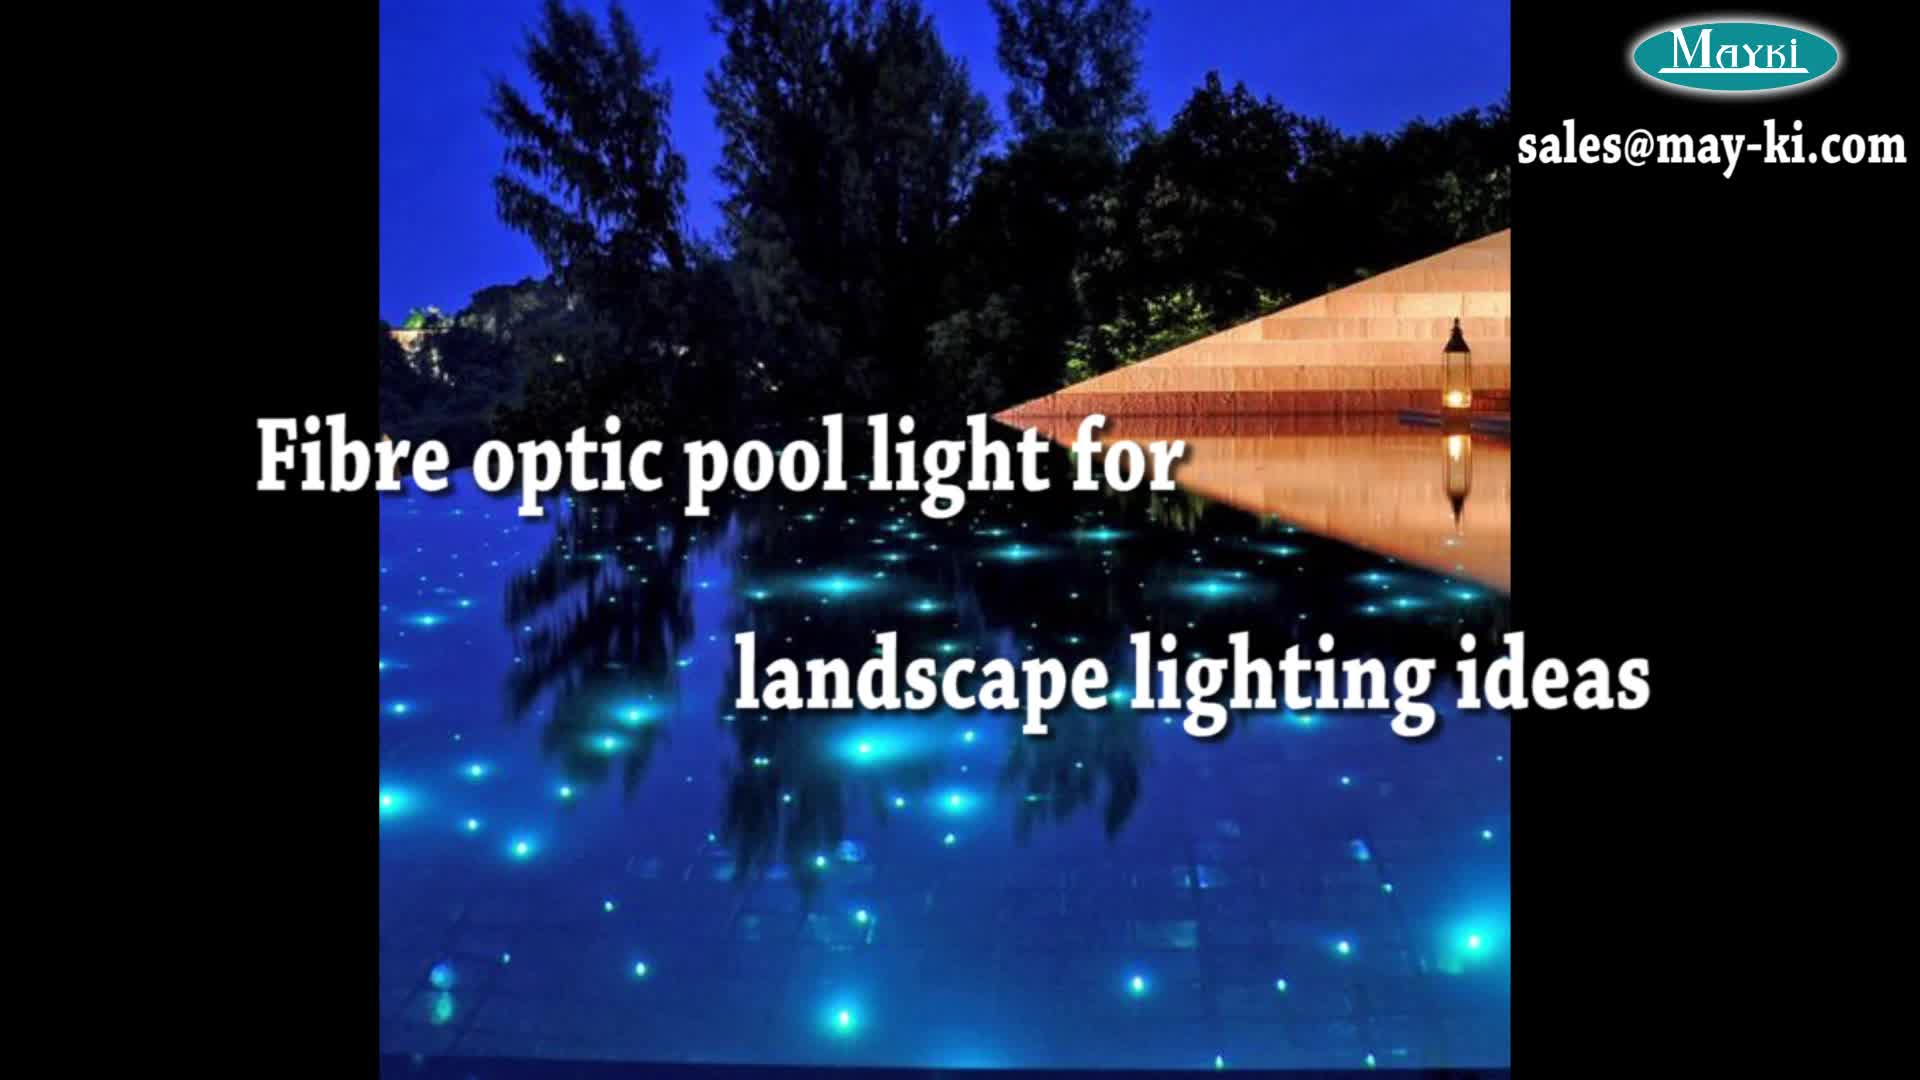 Top Quality Swimming Pool Fibre Optic Lighting With Led Light Engine And End Glow Fiber